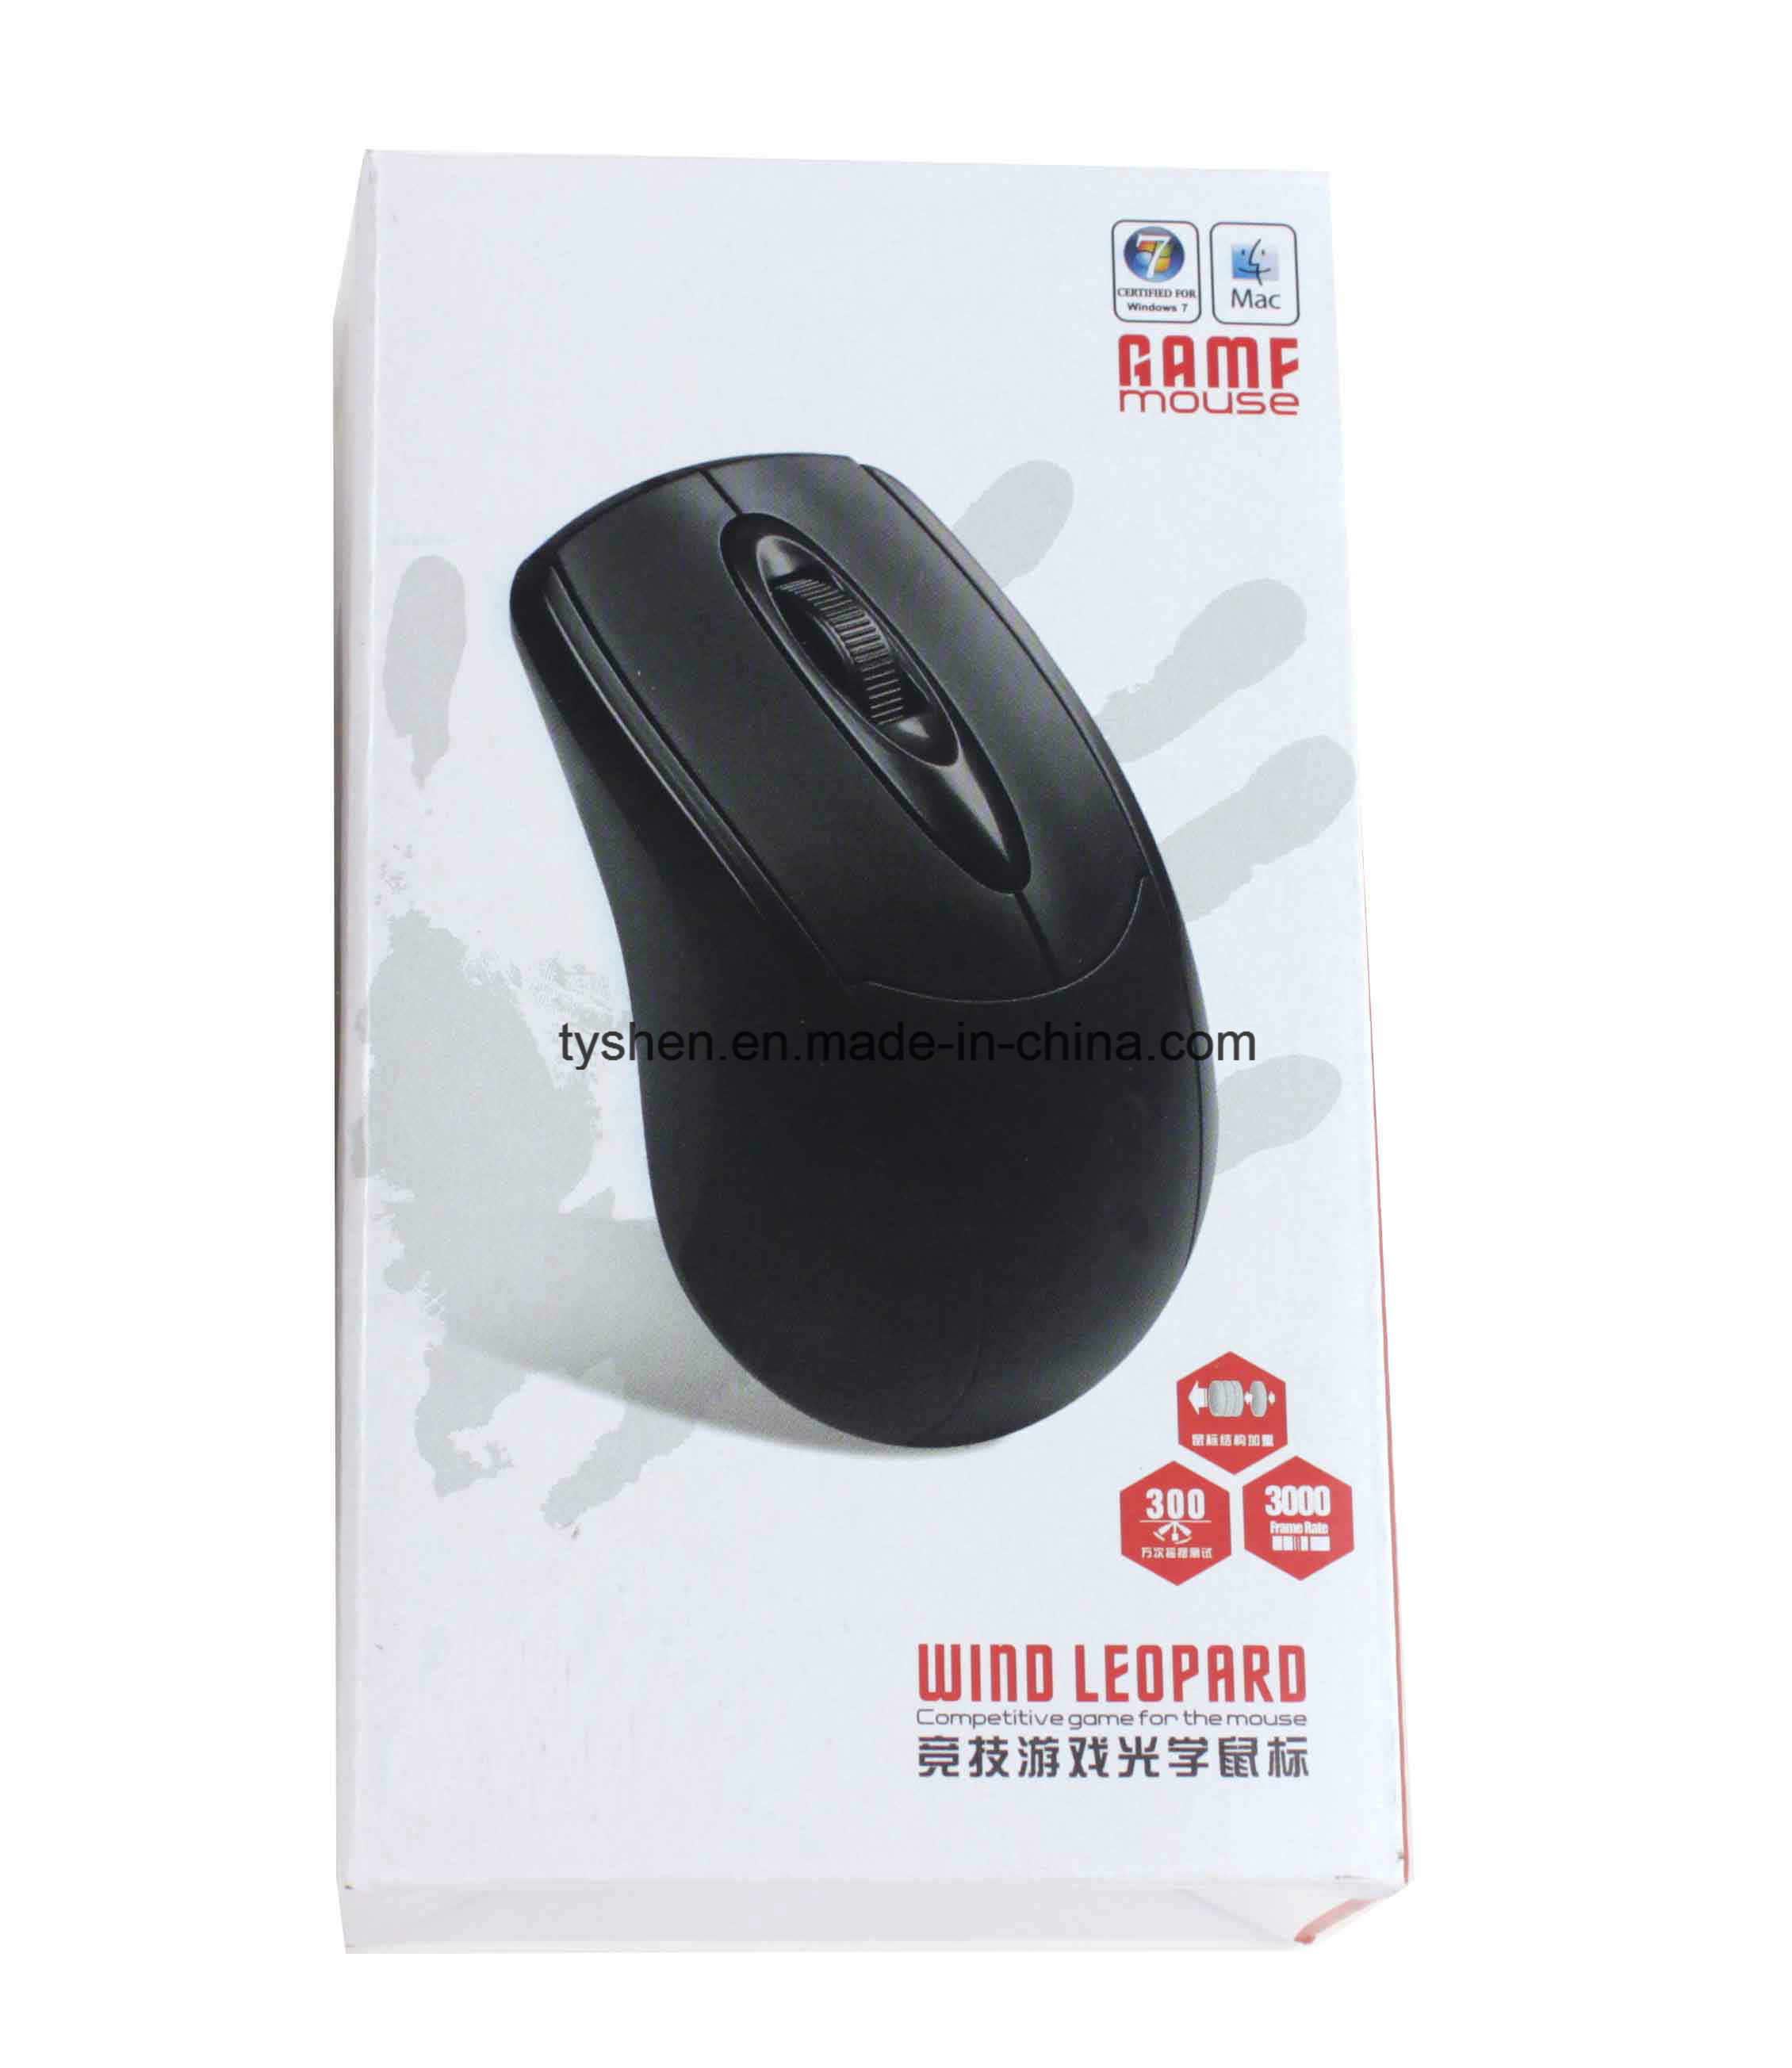 Computer Mouse 1000 Dpi 0.62USD